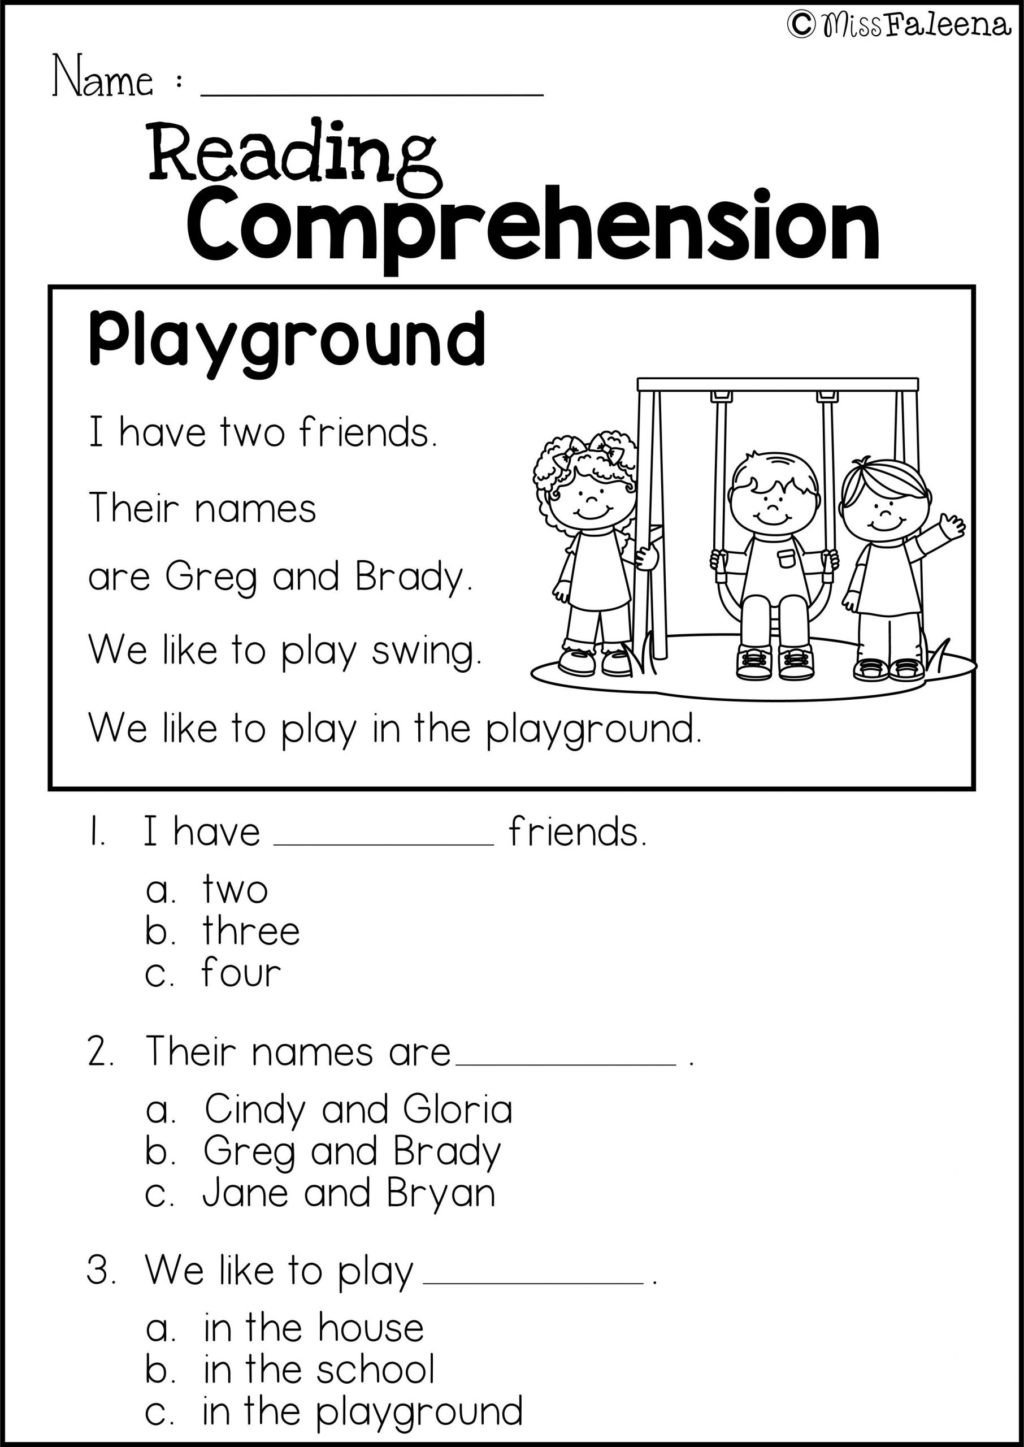 Social Studies Worksheet 1st Grade Worksheet Printable Worksheets for First Gradee Practice